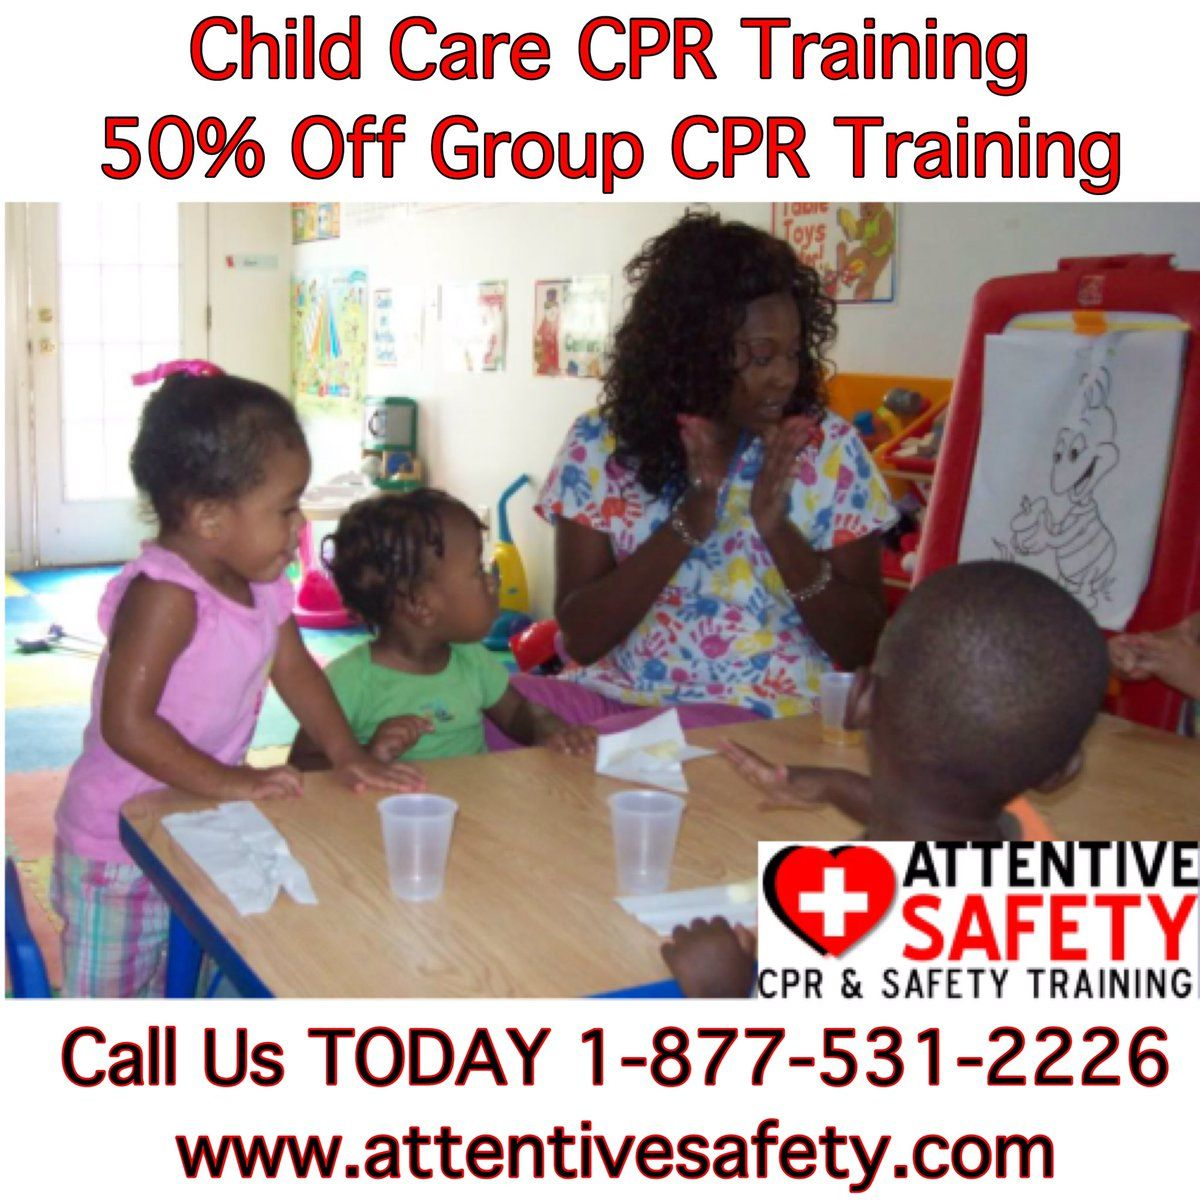 Attentive Safety CPR (AttentiveSafety) Twitter Cpr